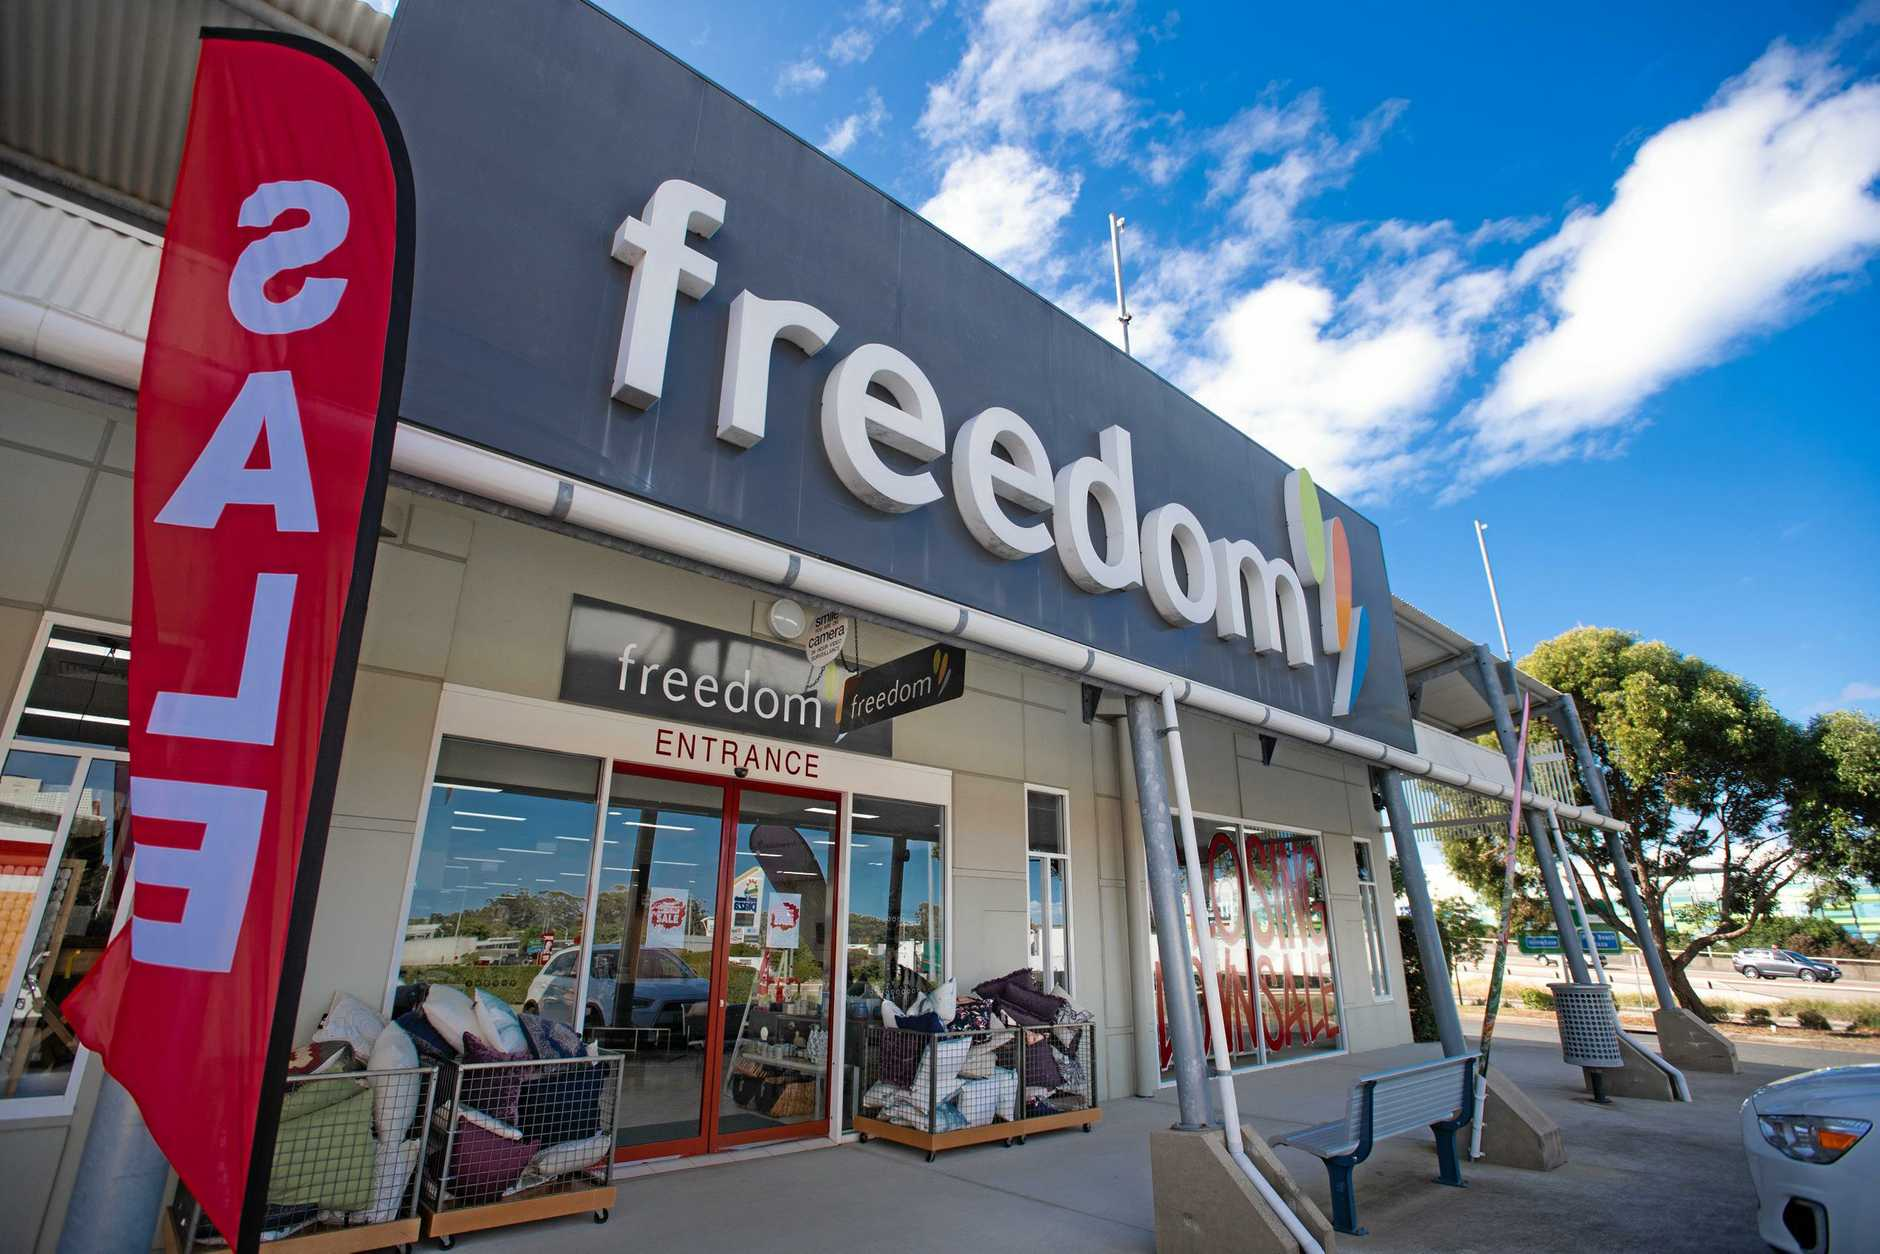 Owner of Coffs Harbour Freedom Furniture Leanne Watson. Store to close. Closing down sale.. 20 JUNE 2019